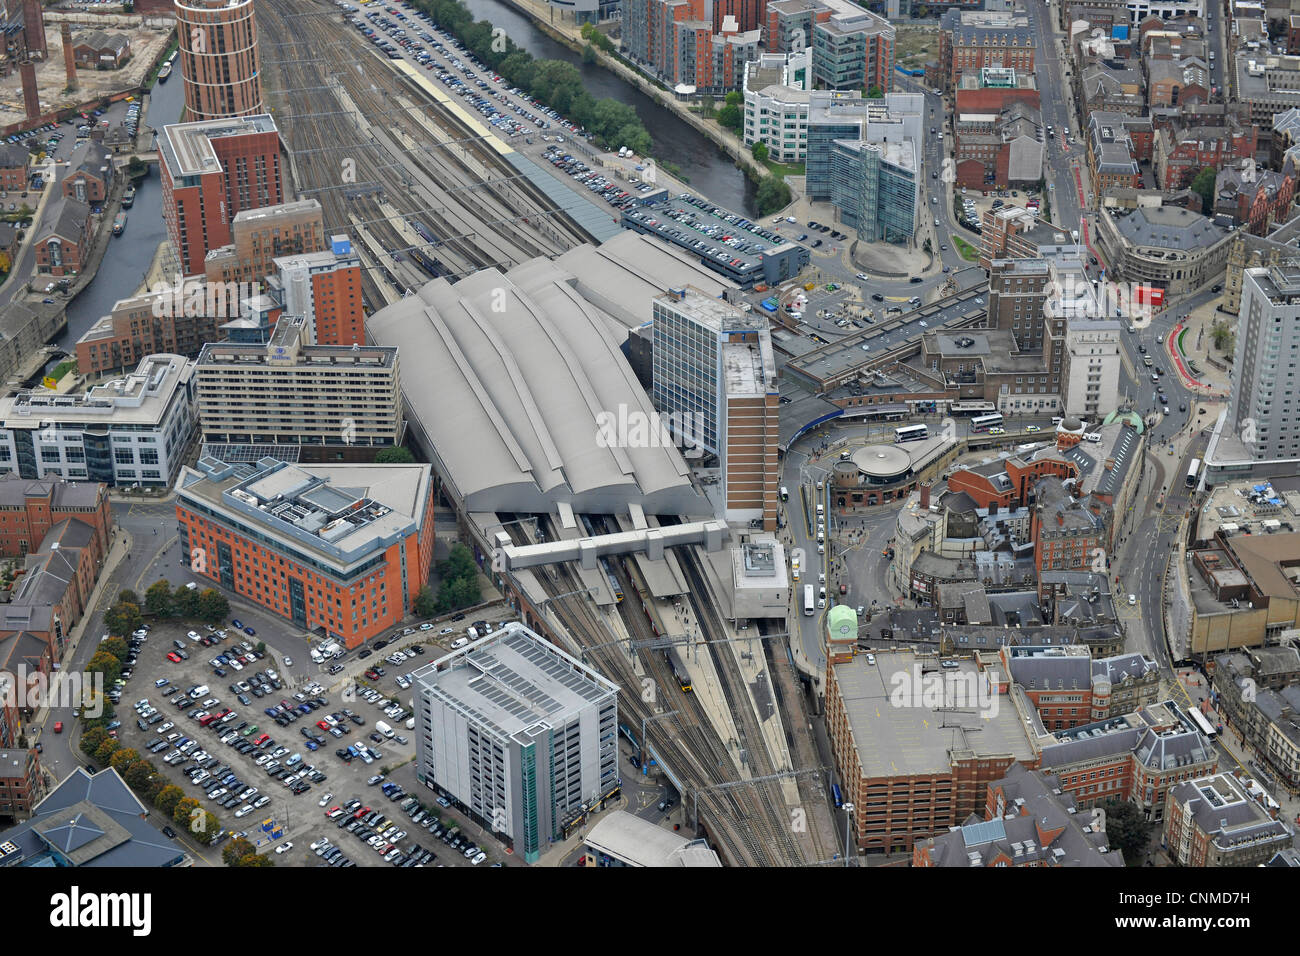 Aerial Photograph showing Leeds Railway Station and surrounding area. - Stock Image